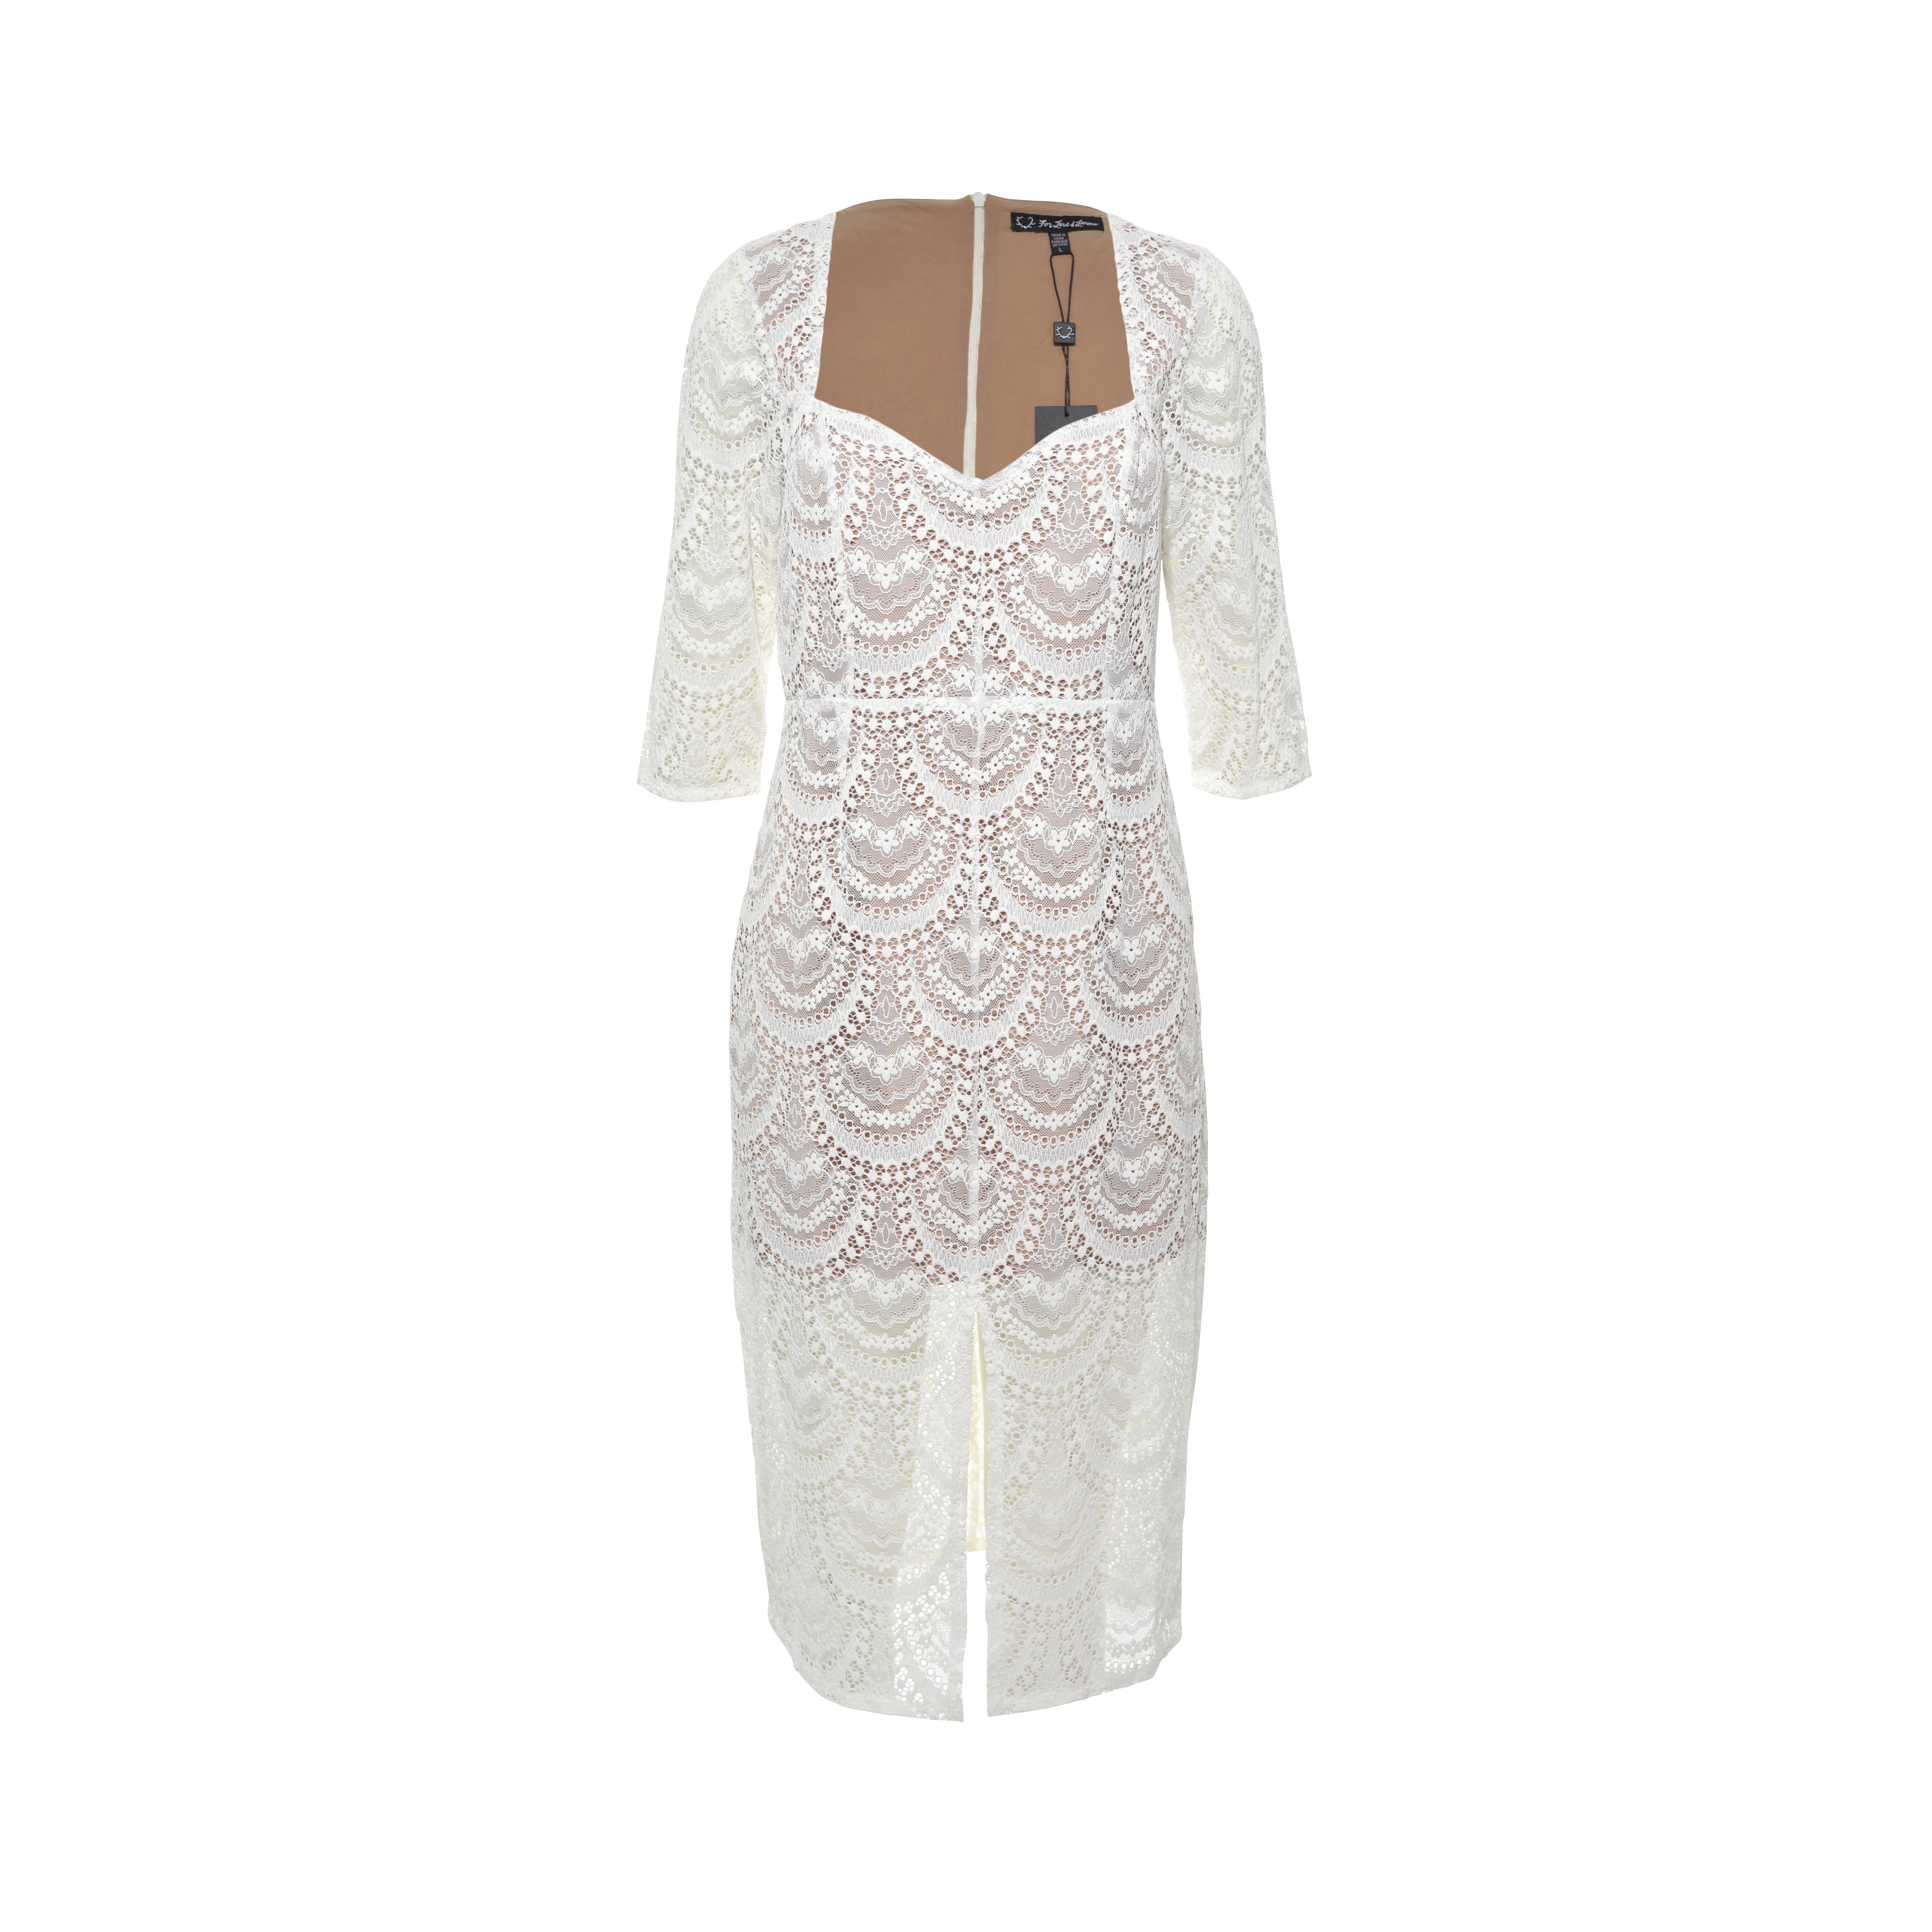 Authentic Second Hand For Love And Lemons White Lace Dress Pss 288 00014 The Fifth Collection